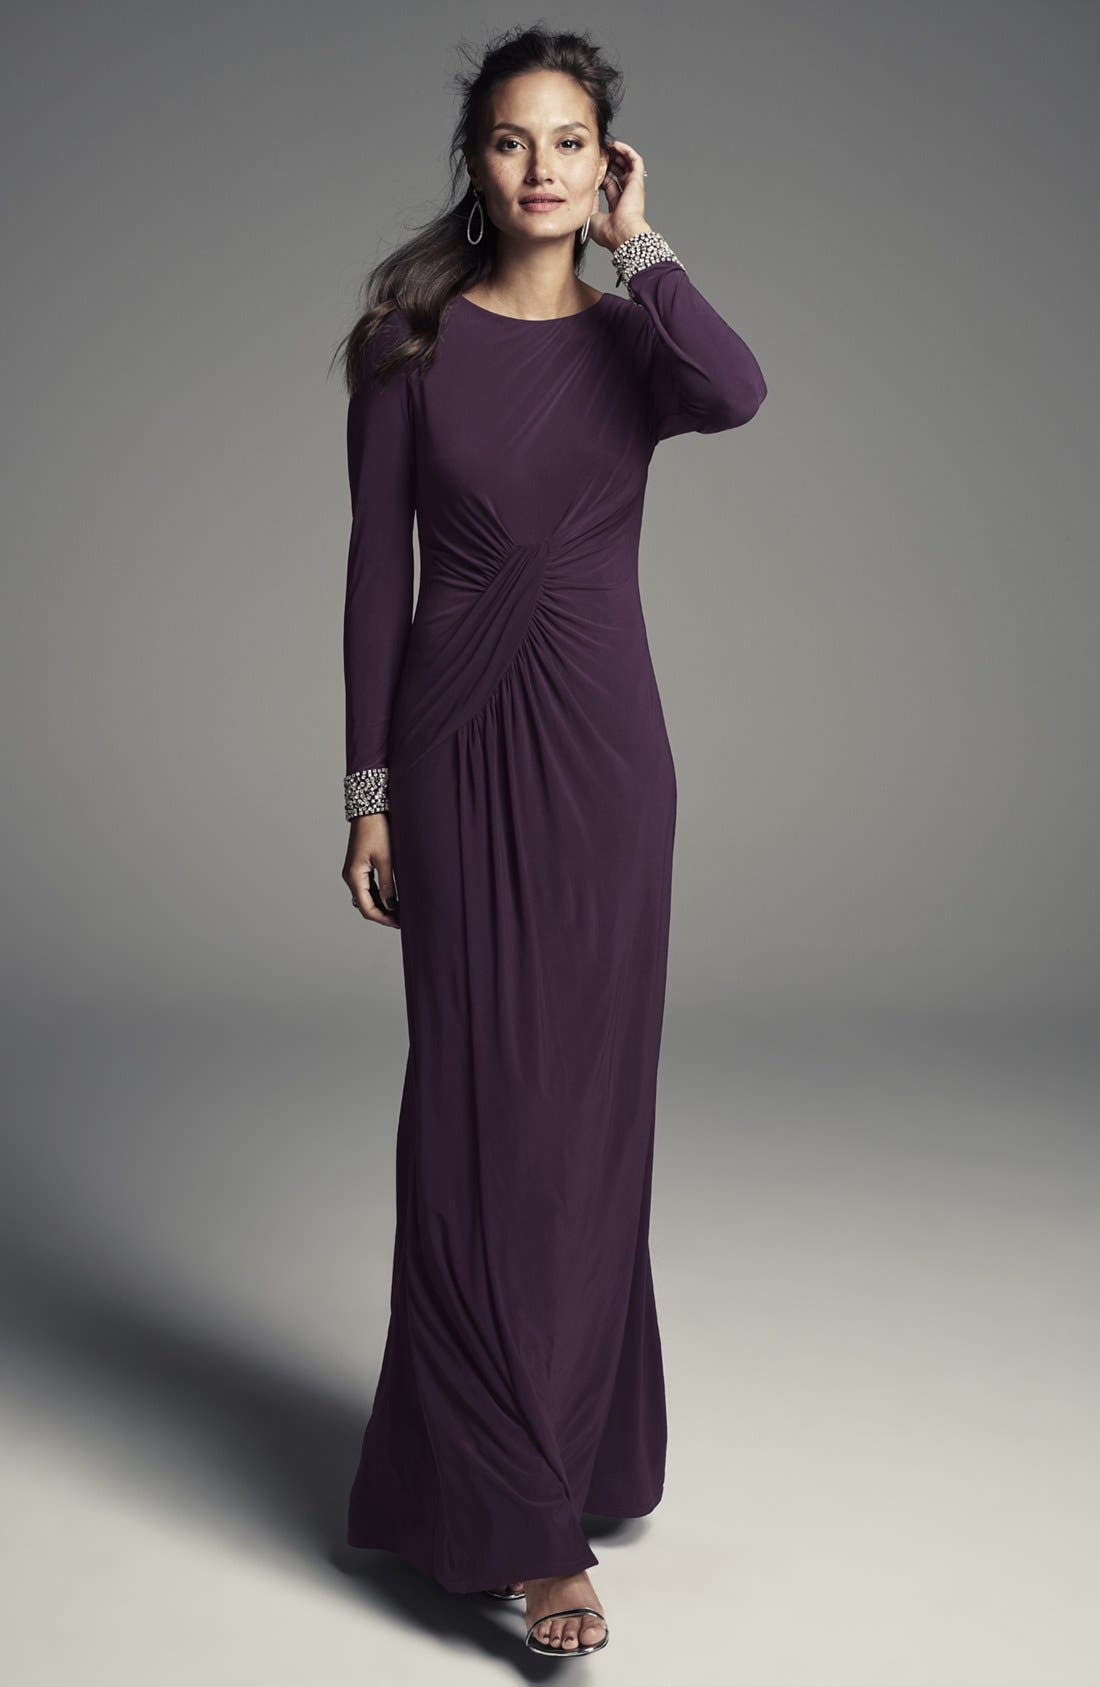 Beaded Cuff Ruched Jersey Gown,                             Alternate thumbnail 10, color,                             505